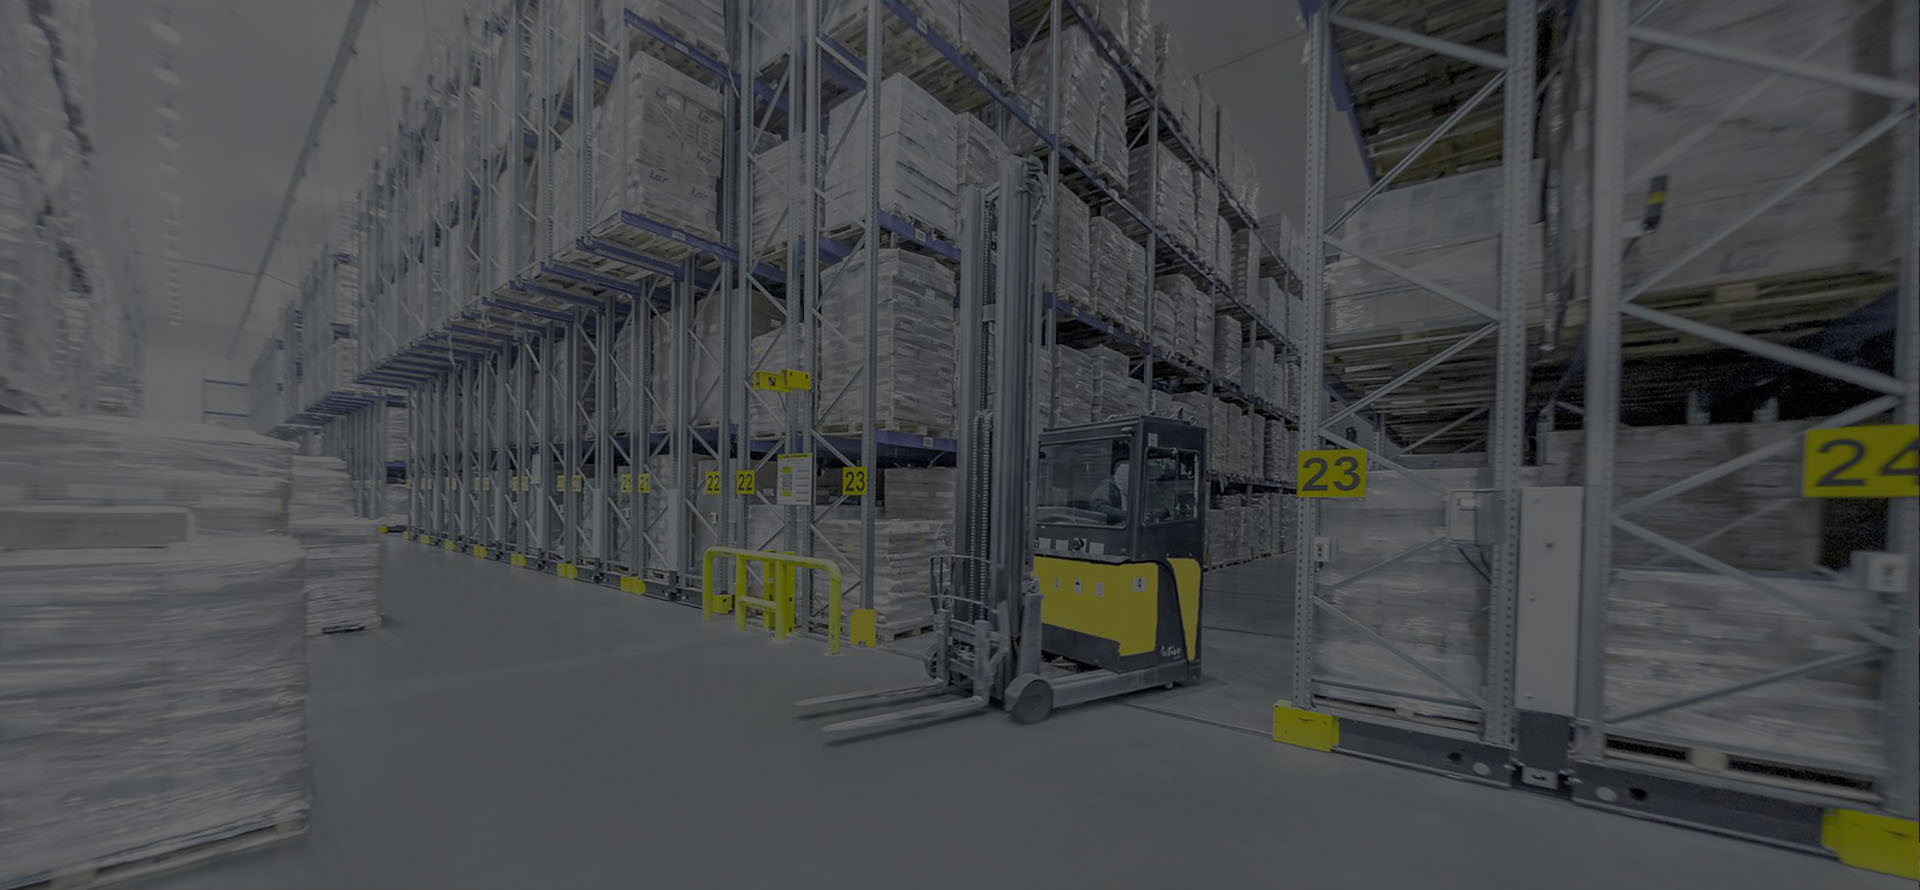 pallet racking inspections and audits sydney